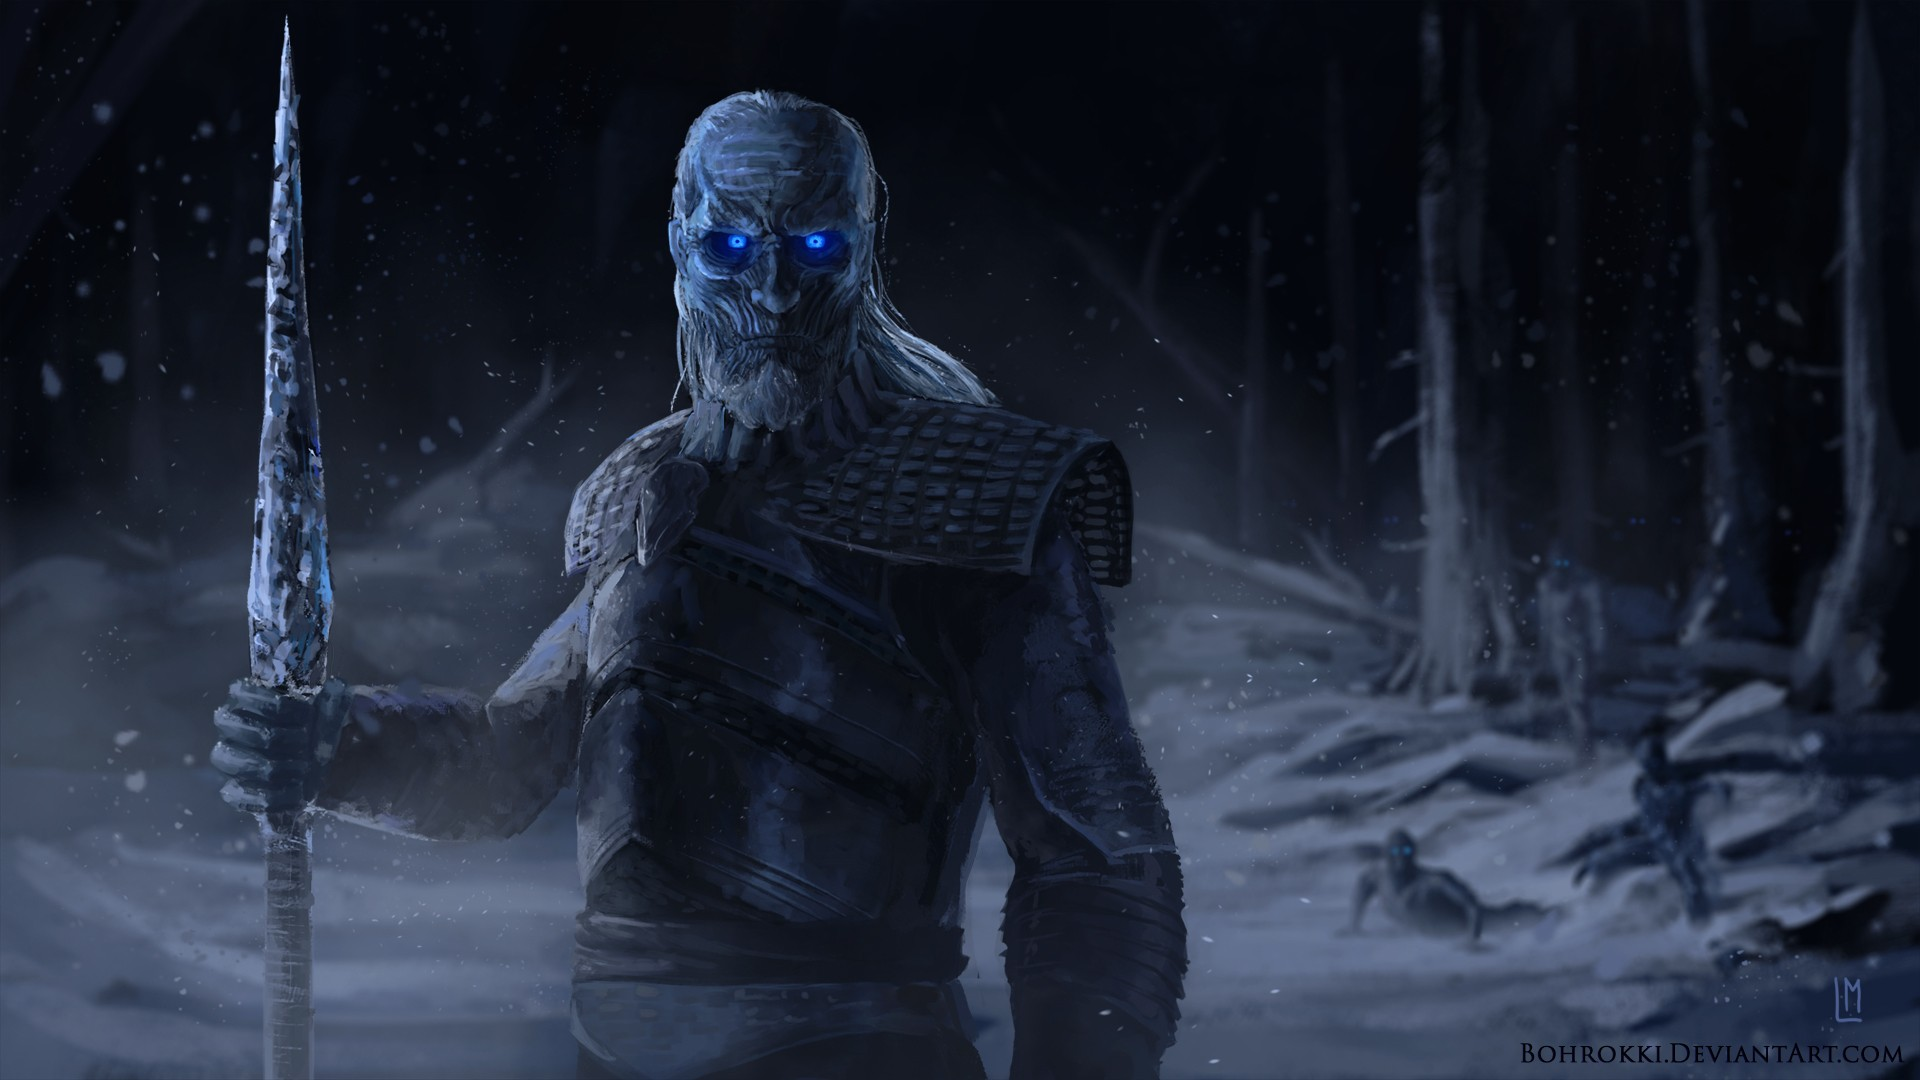 Iphone 5 Space Wallpaper Hd Night King White Walker Artwork Wallpapers Hd Wallpapers